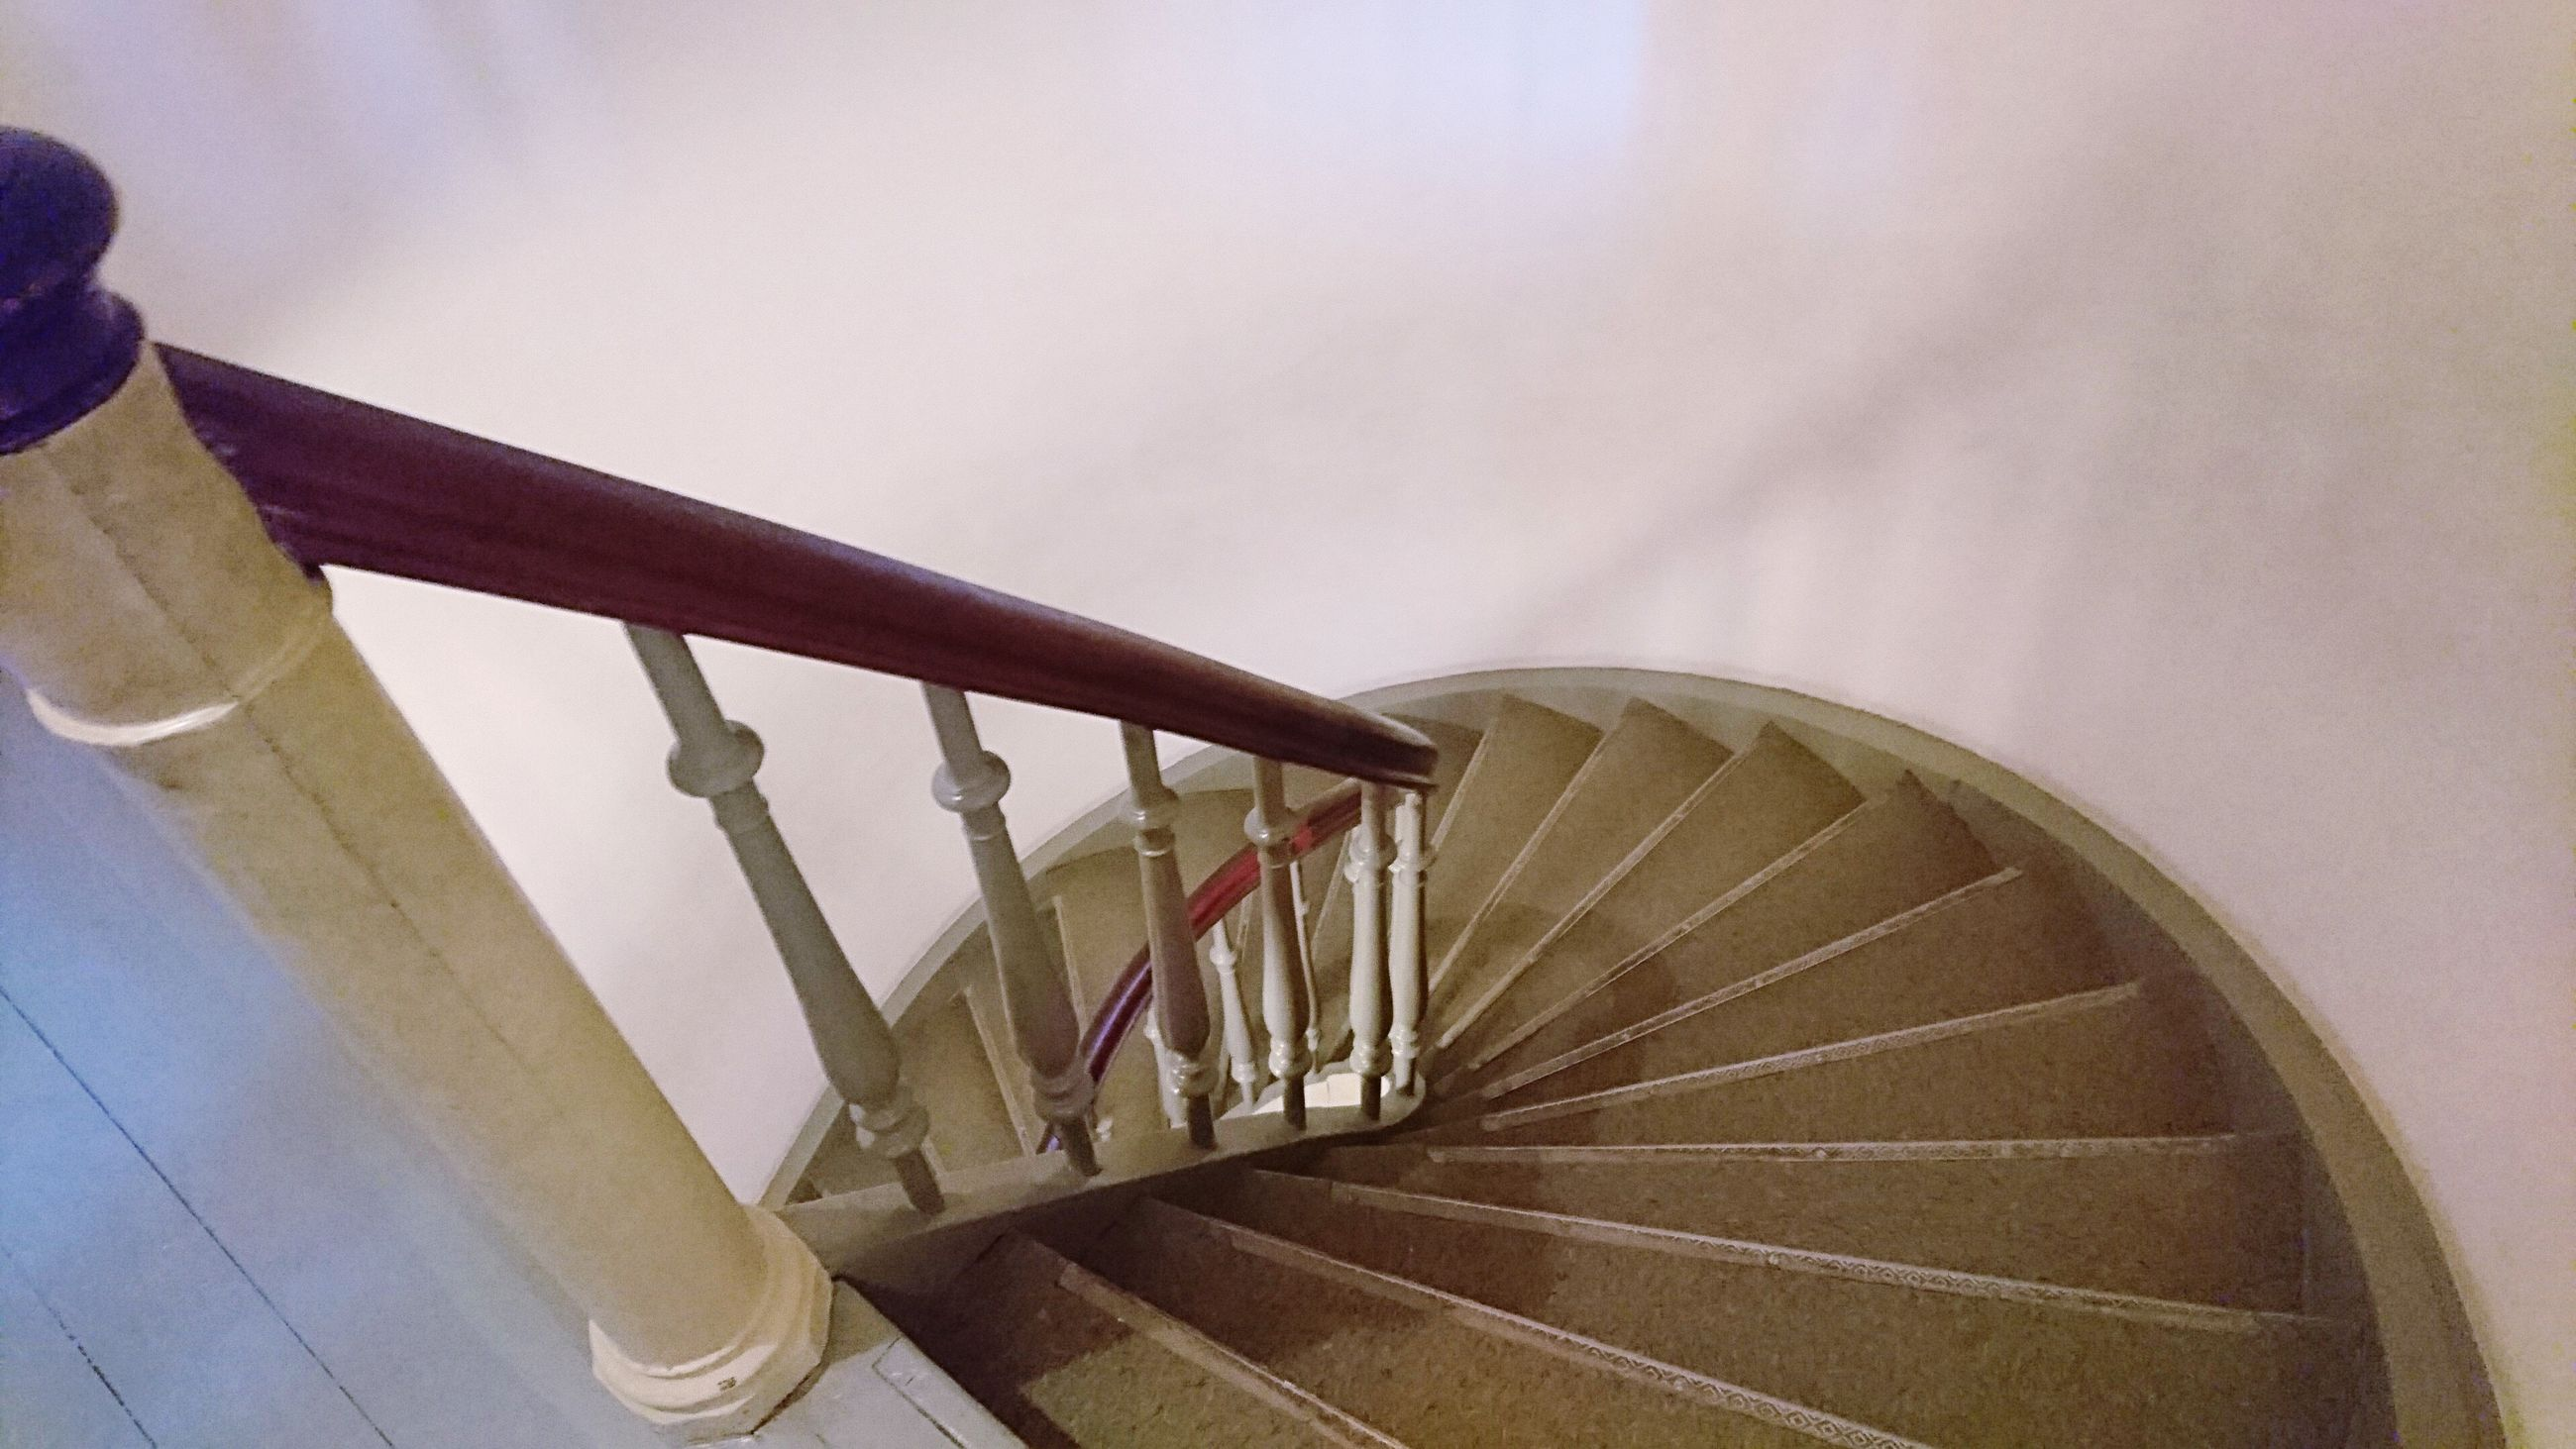 steps and staircases, staircase, steps, railing, spiral, stairs, spiral stairs, no people, architecture, built structure, hand rail, low angle view, indoors, spiral staircase, sky, day